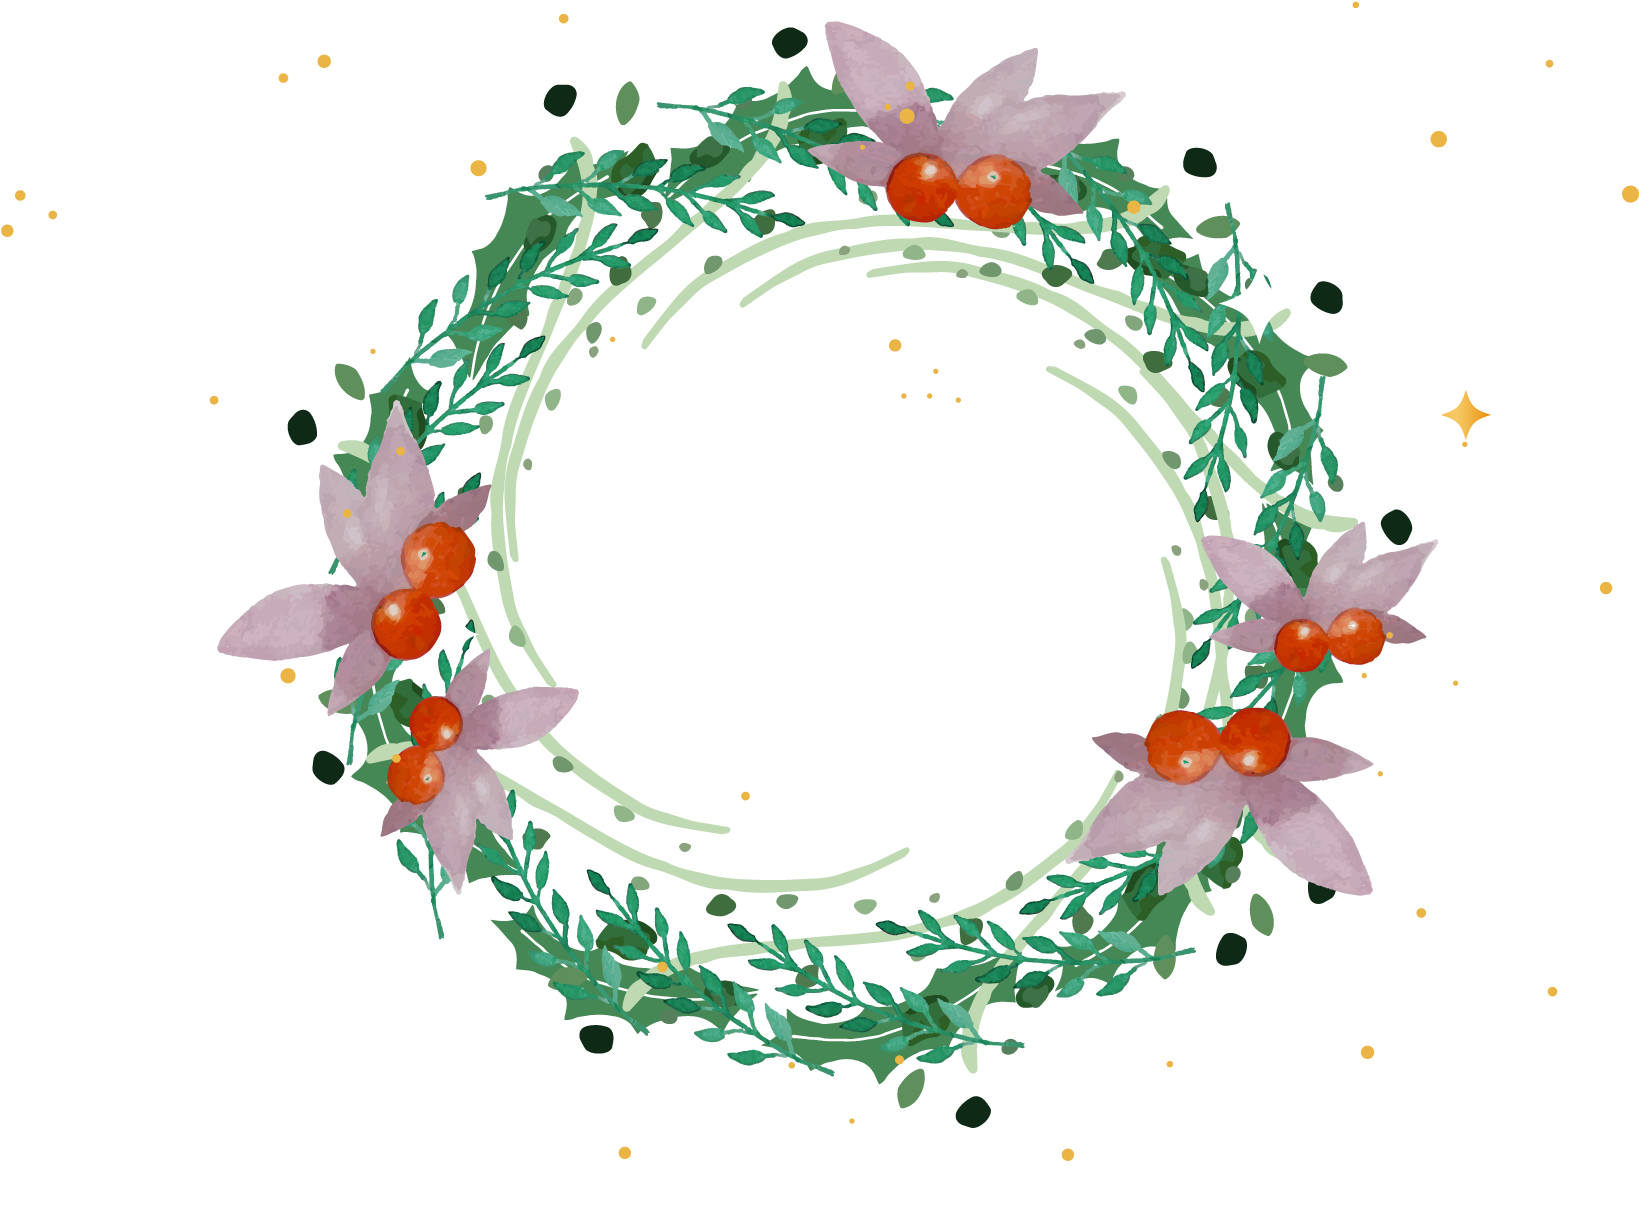 Wreath Christmas Garland Watercolor Painting - Transparent Green Flower Circle (1894x1325)